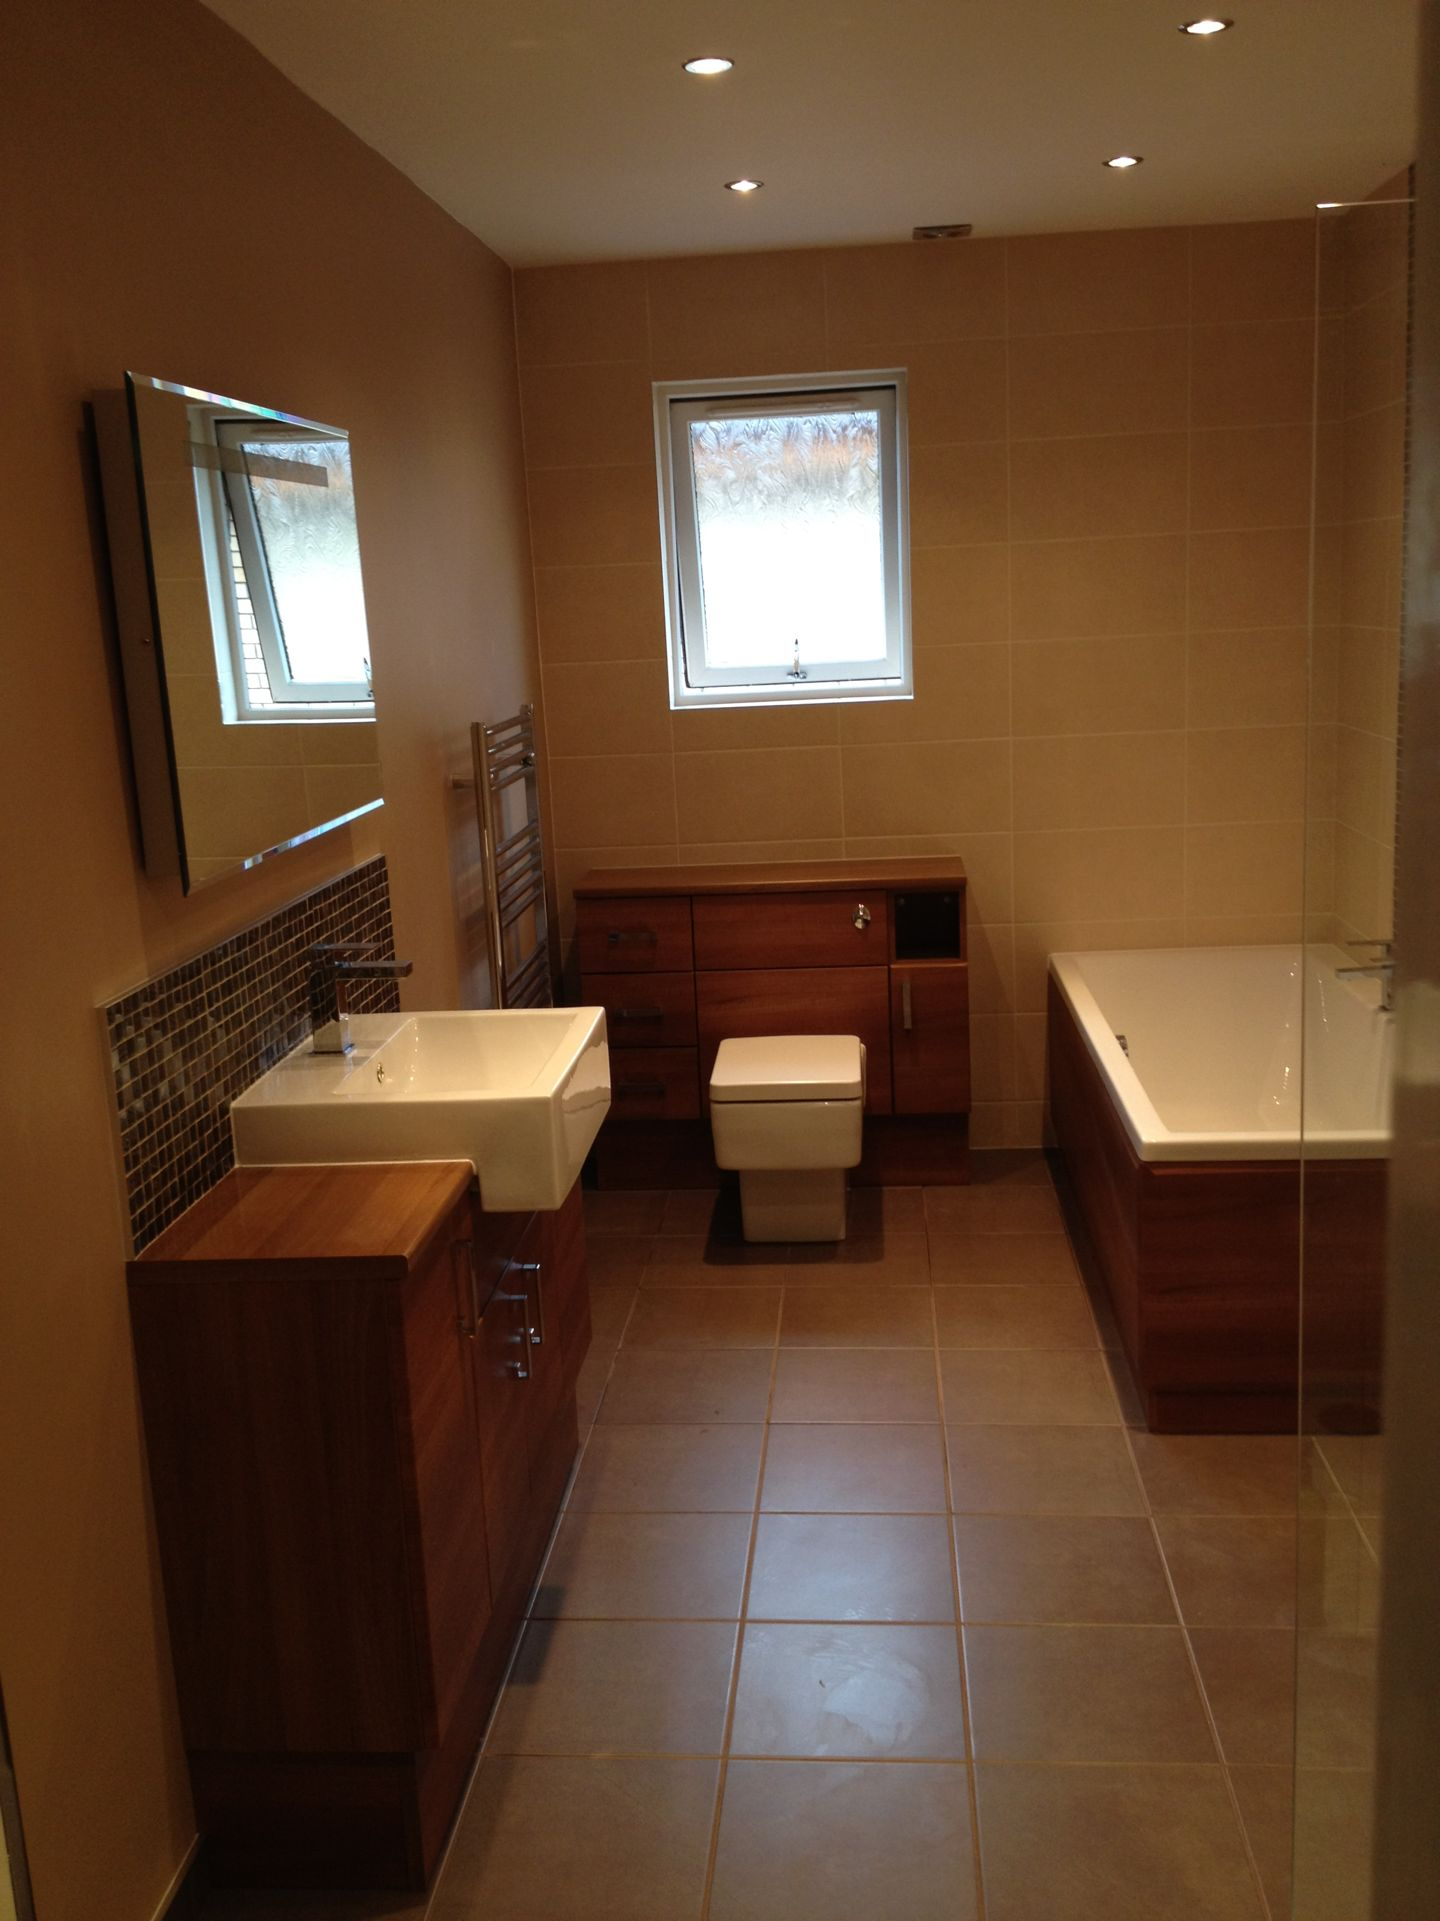 Unbeatable Glasgow Bathroom Deals And Installations